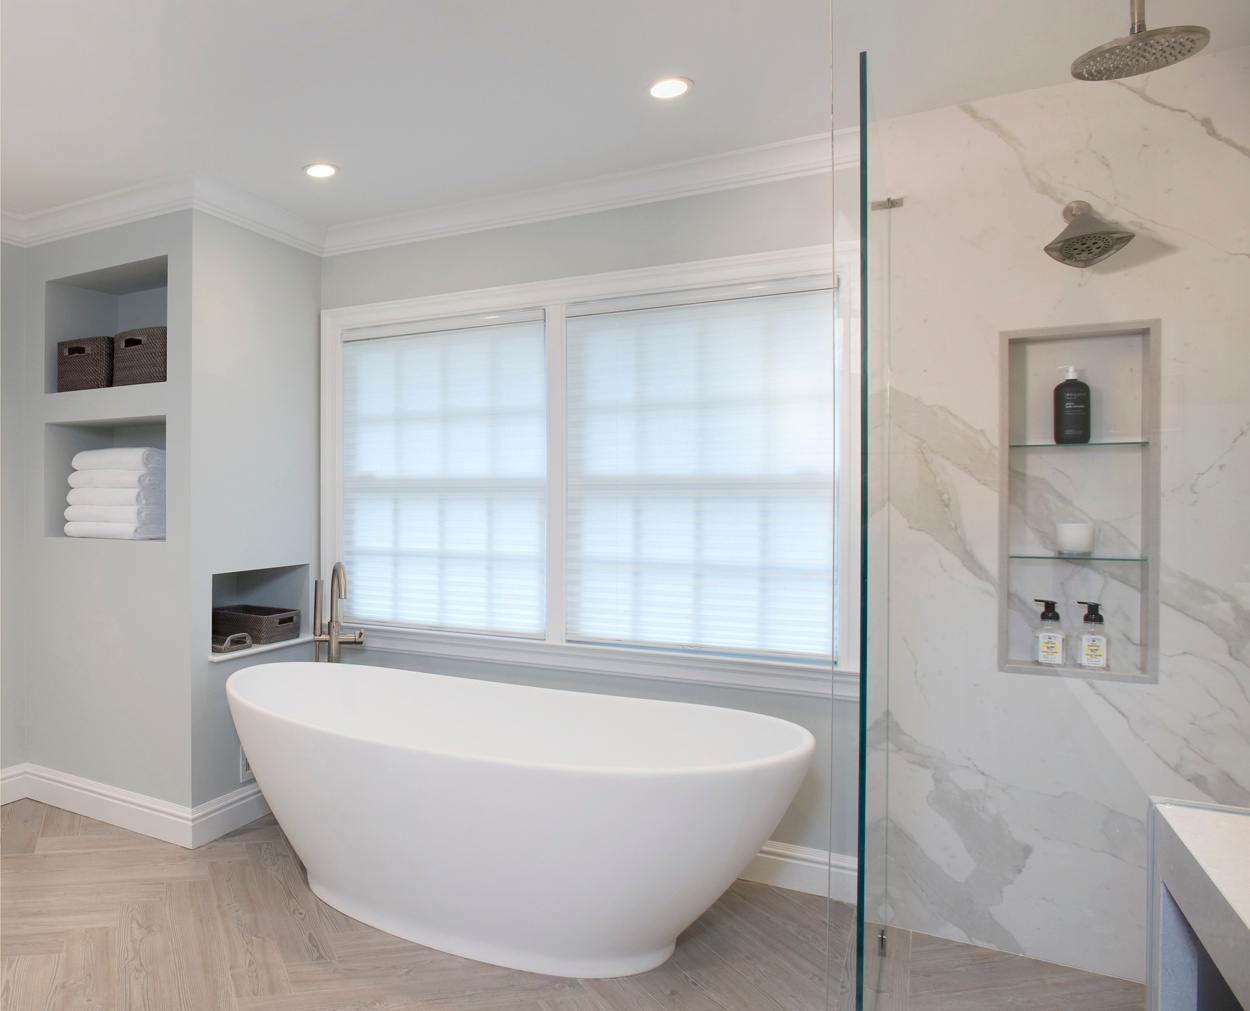 free standing tub, with white towels and Crate and Barrel baskets in a storage unit